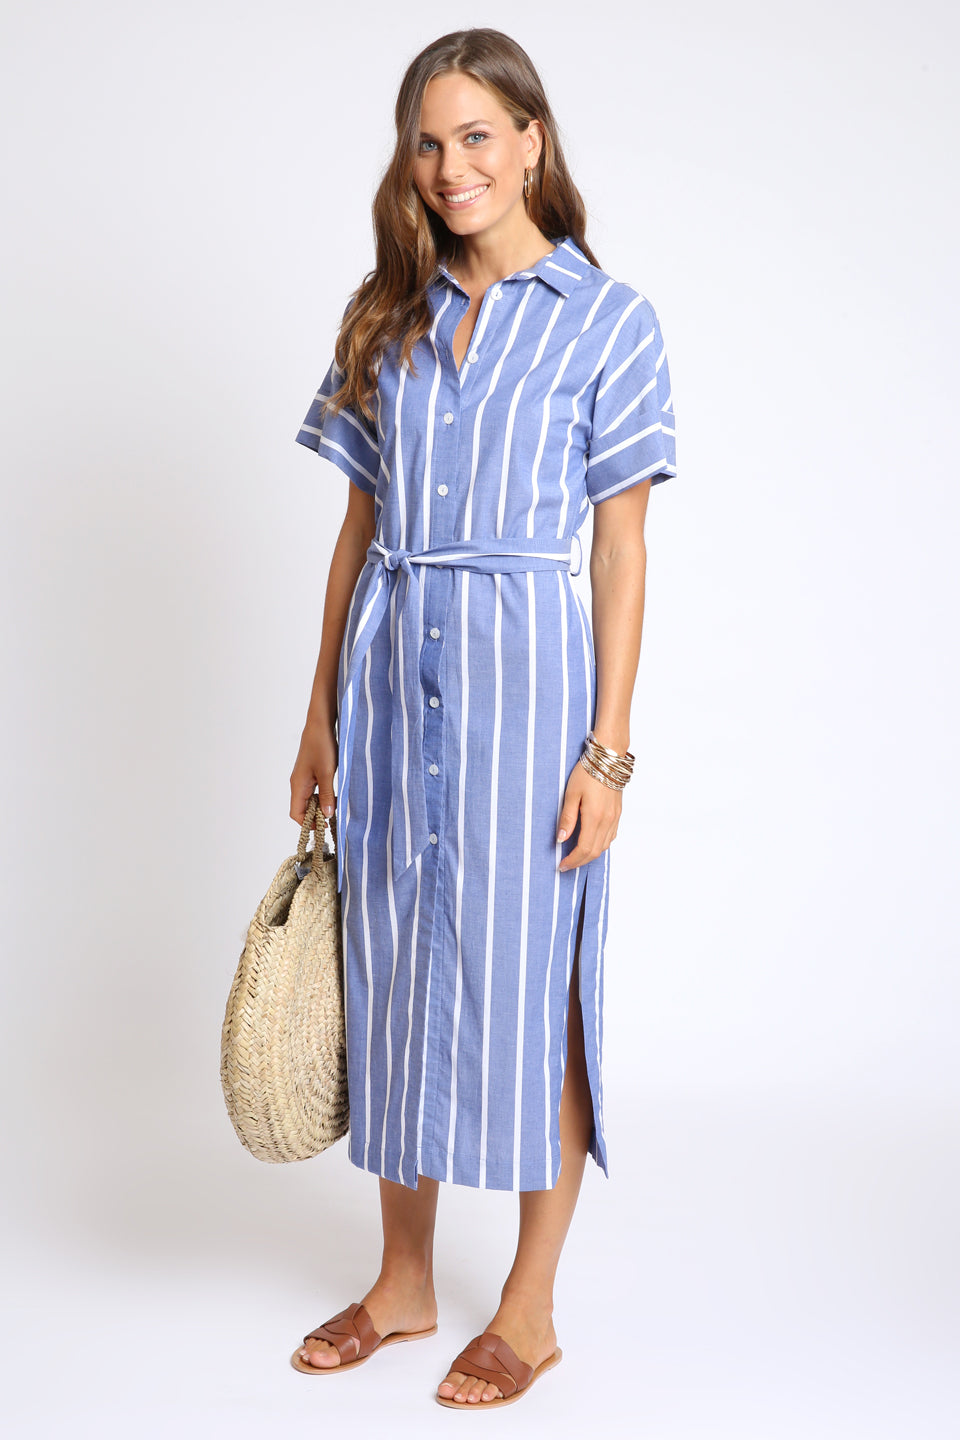 The Bella Shirt Dress - Chambray Stripe